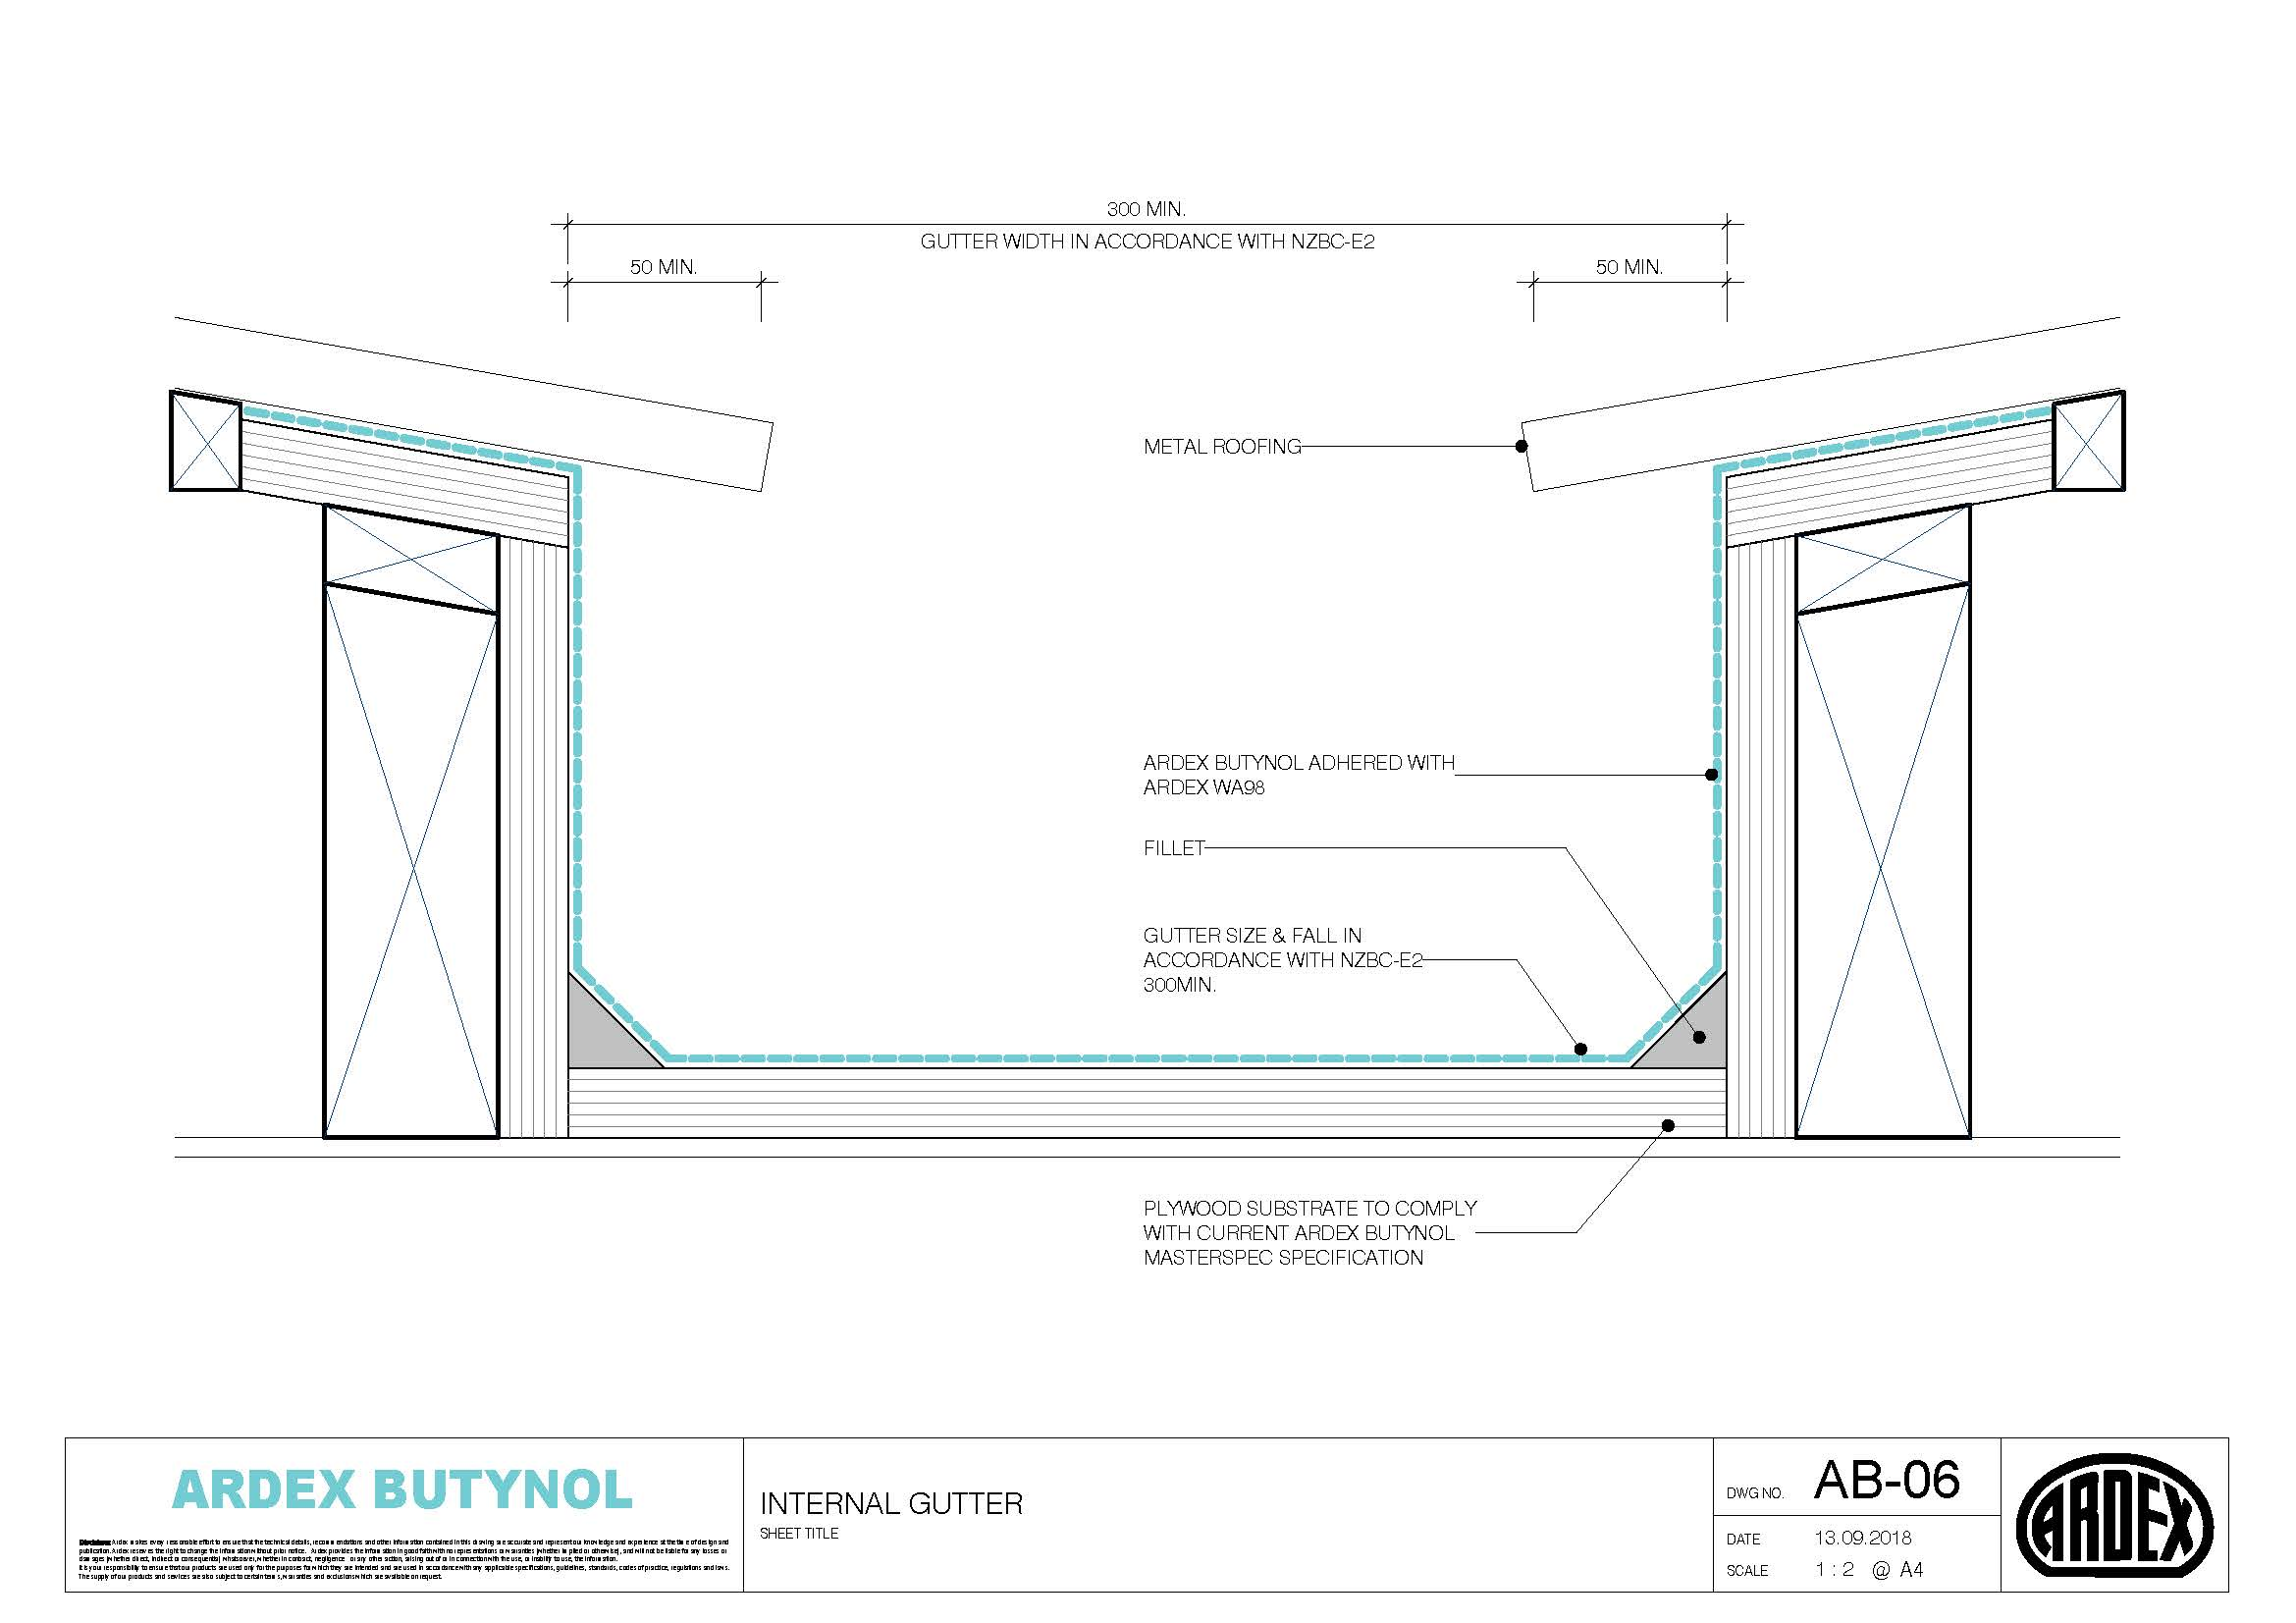 Cad Downloads Butynol Ardex New Zealand